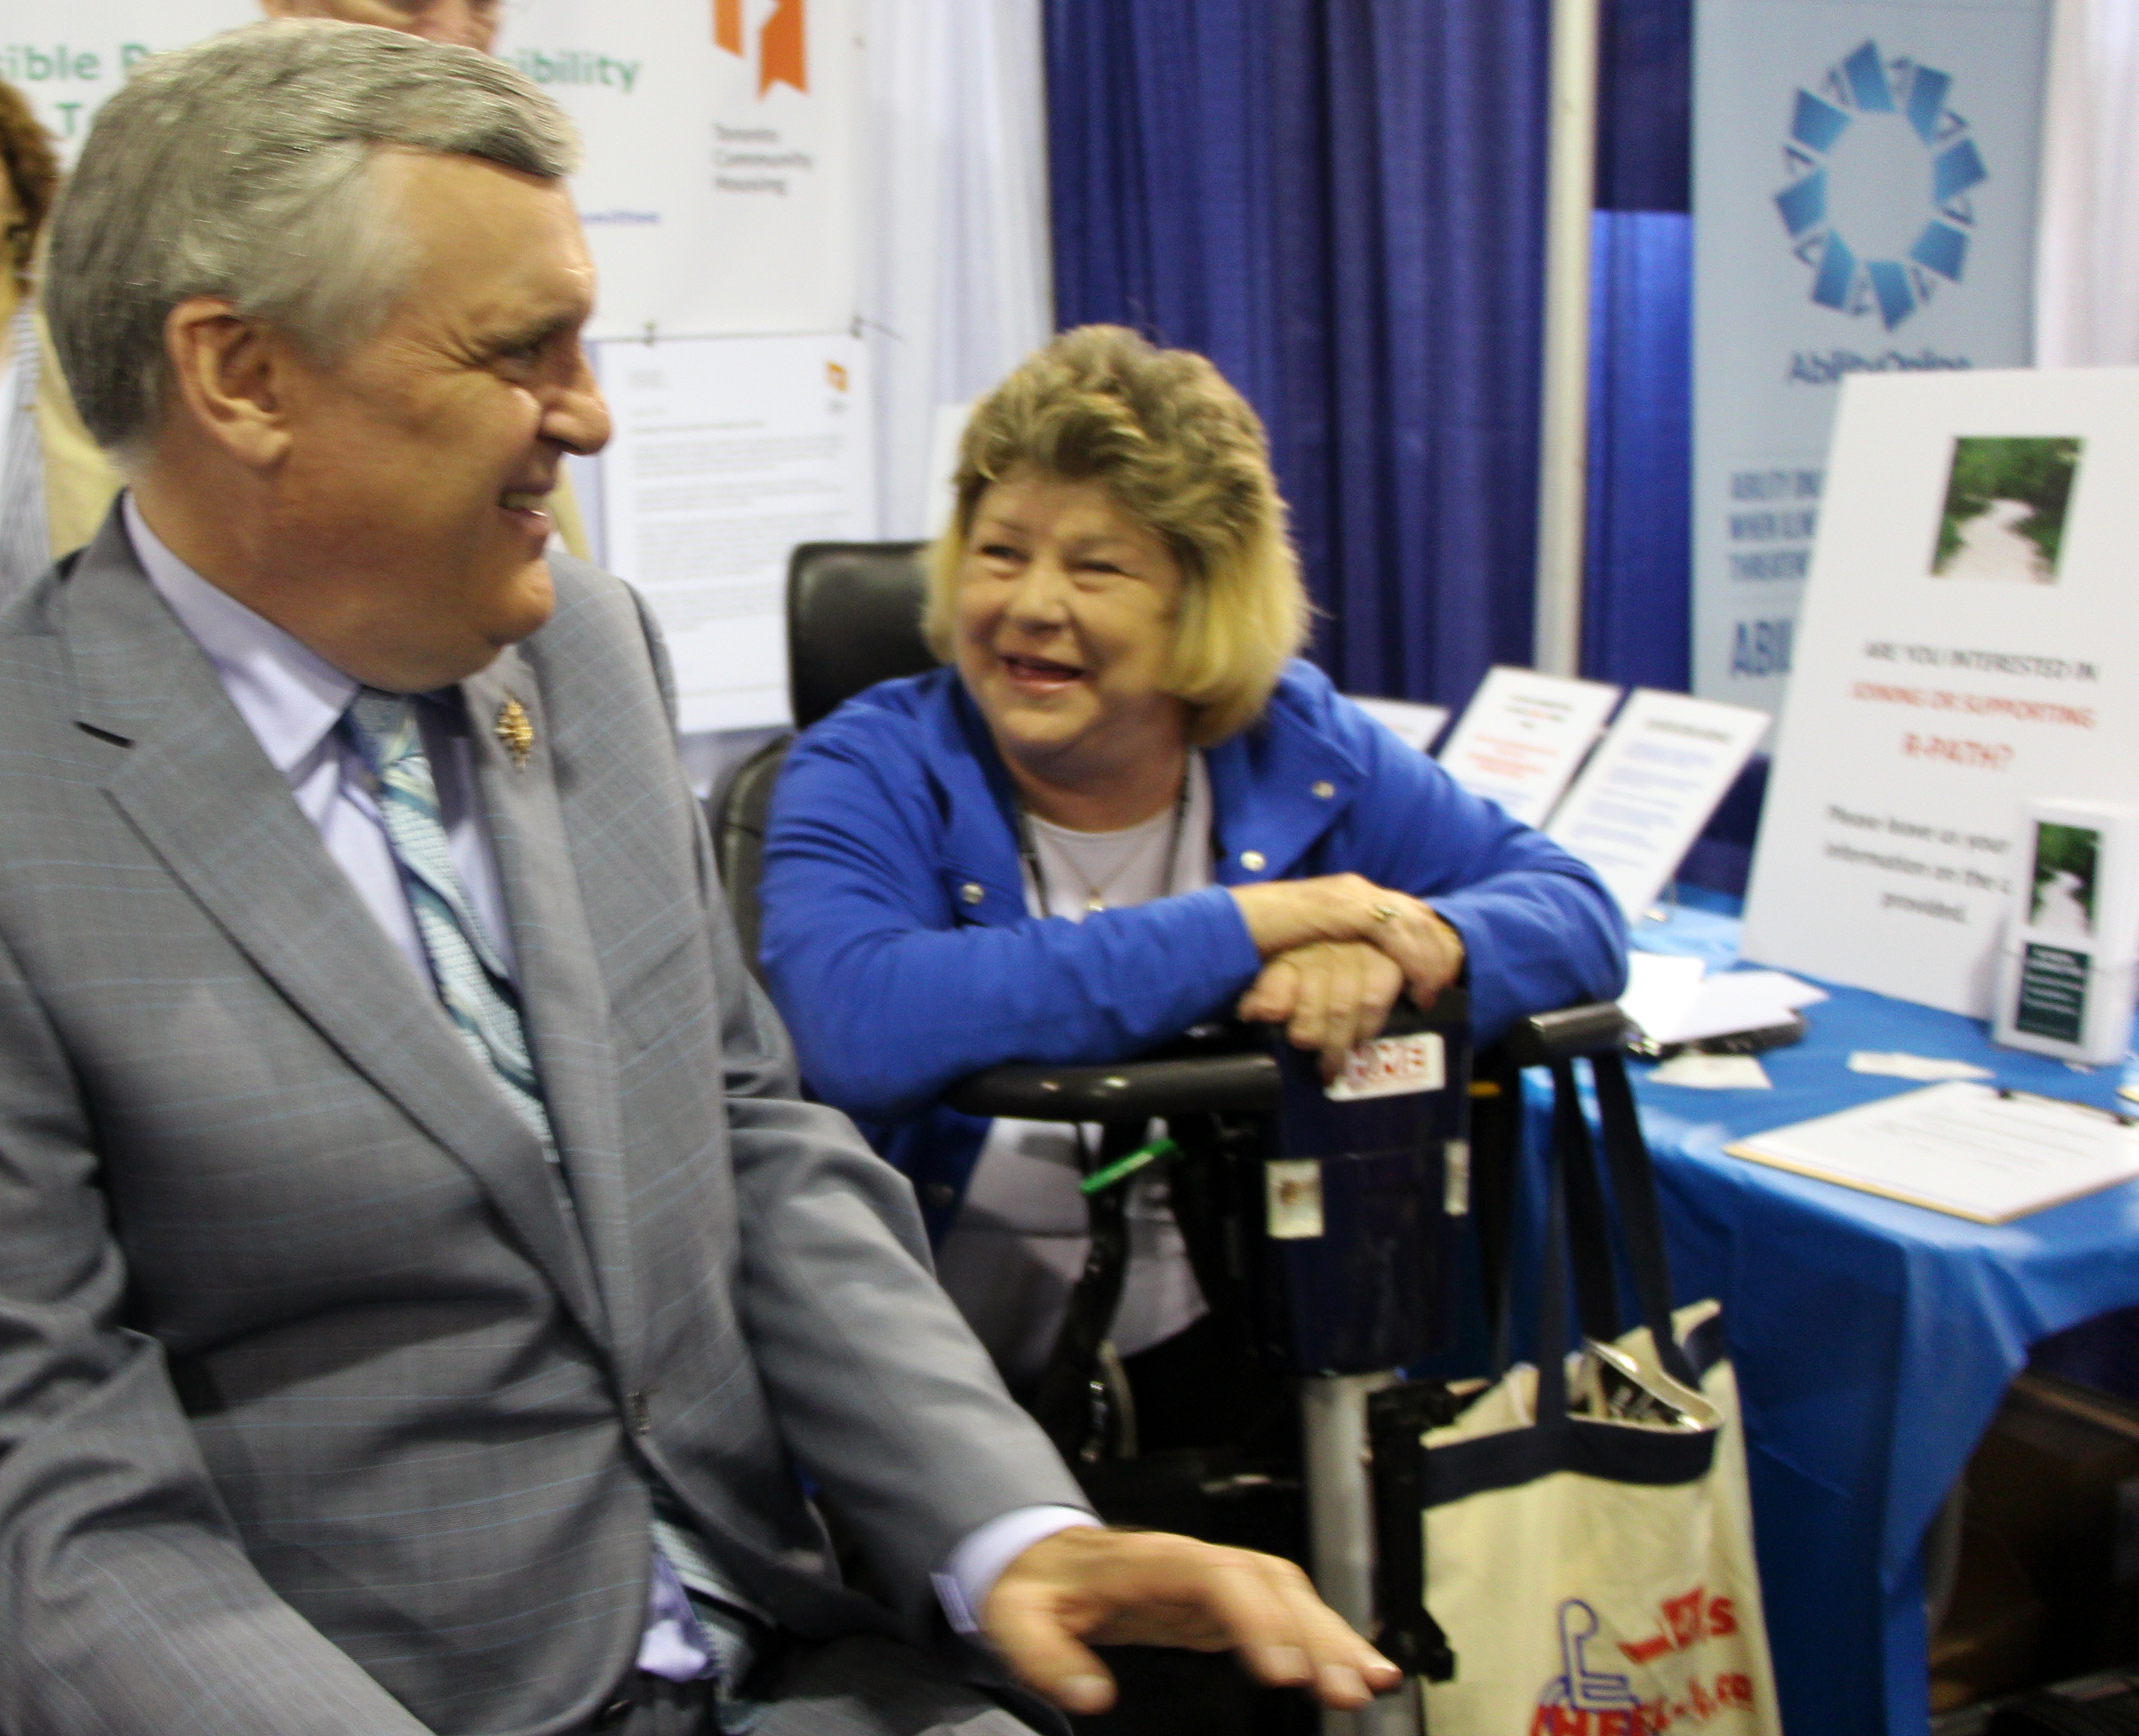 Photo of The Honourable David C. Onley, Lieutenant Governor of Ontario with Cathy Birch, R-PATH Chair